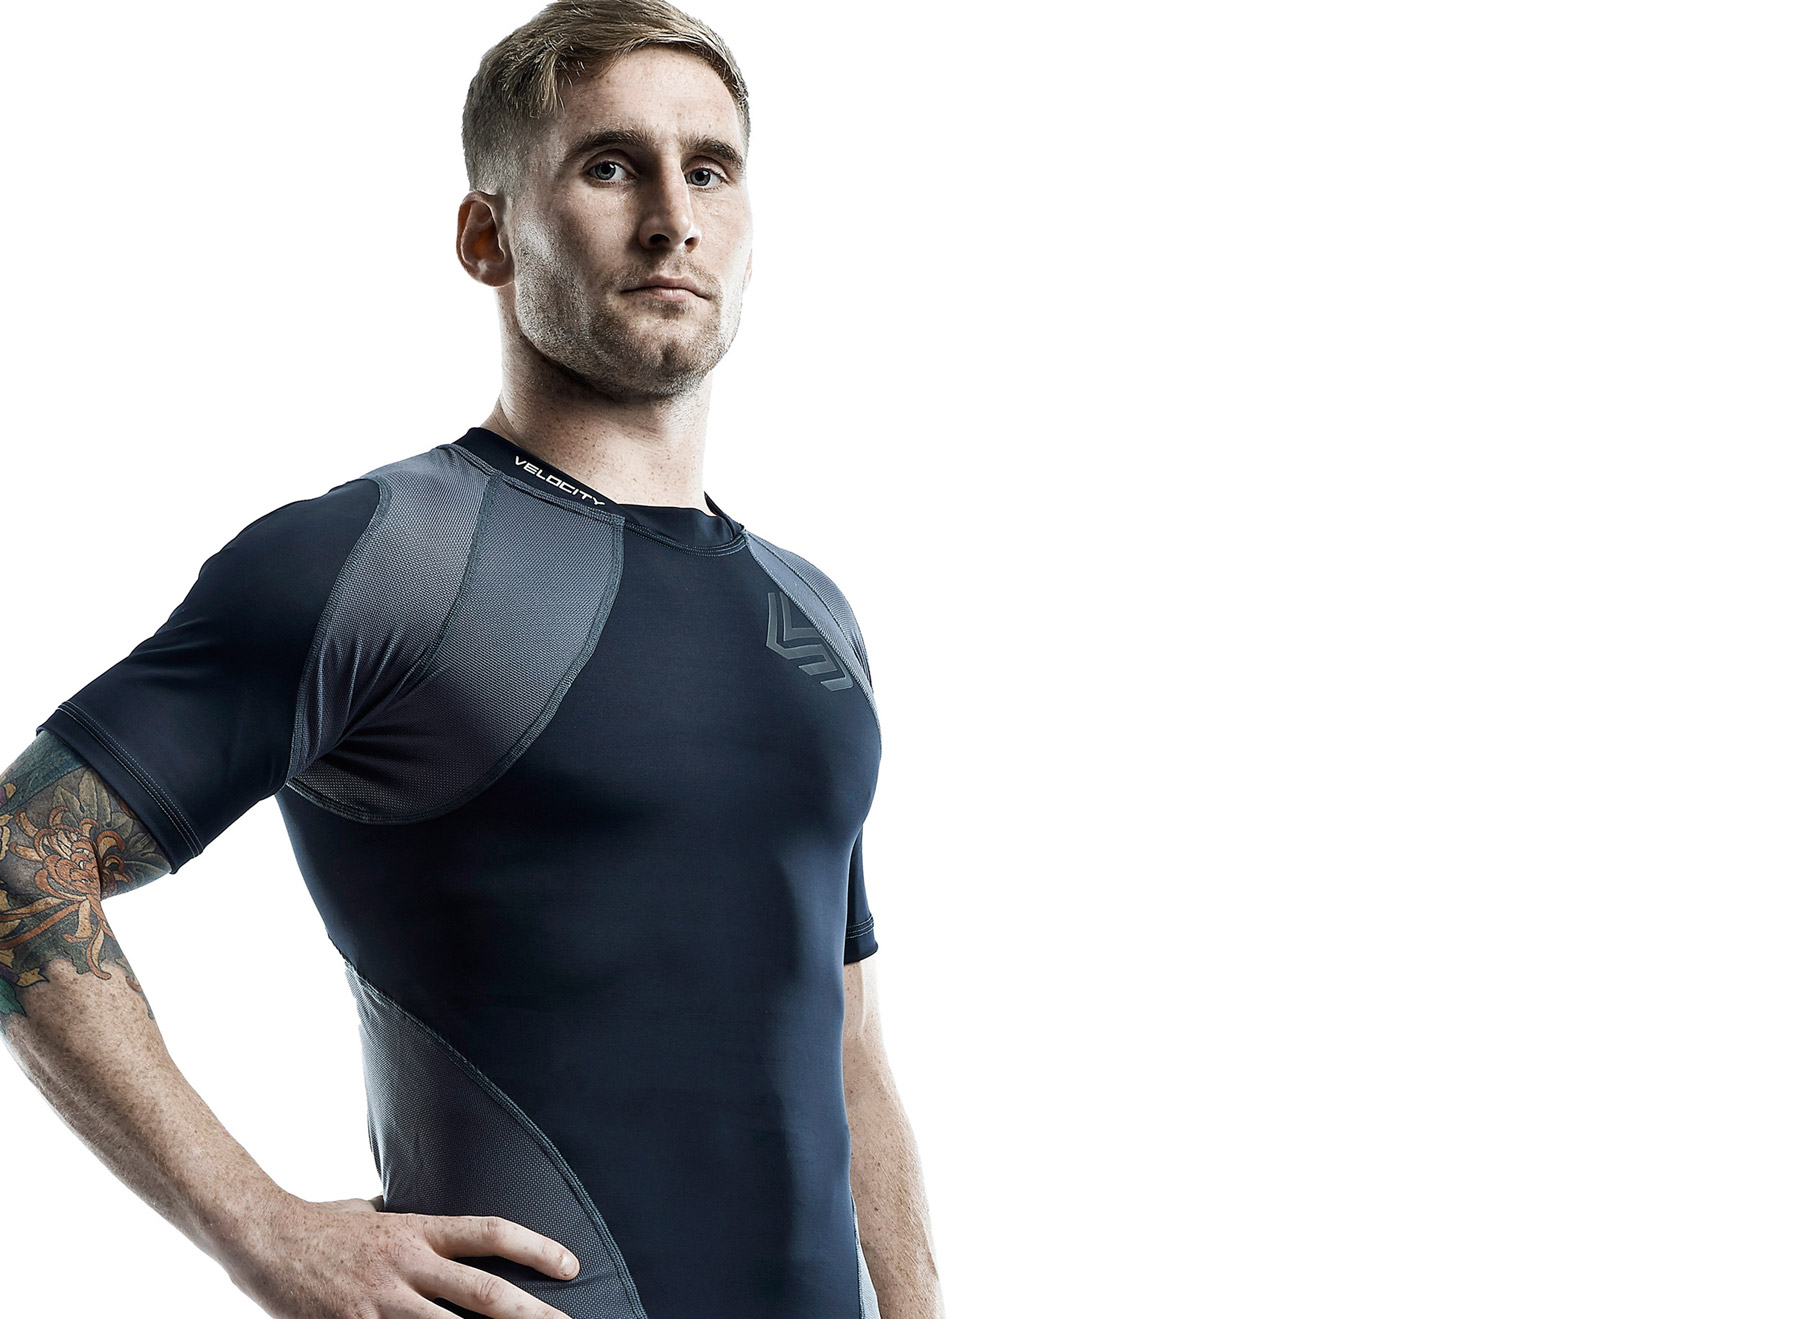 Sam Tomkins photographed for Shock Doctor